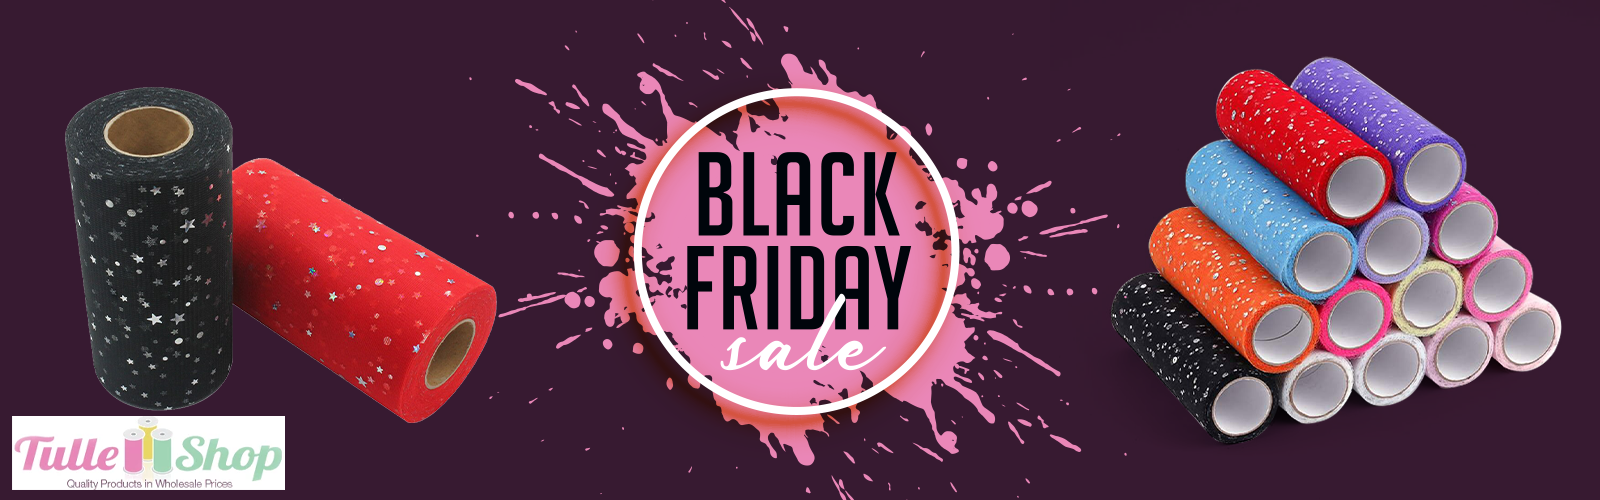 Black Friday Sale on Tulle Shop:10% to 50 % Off on New Arrivals! Limited Time Offer!